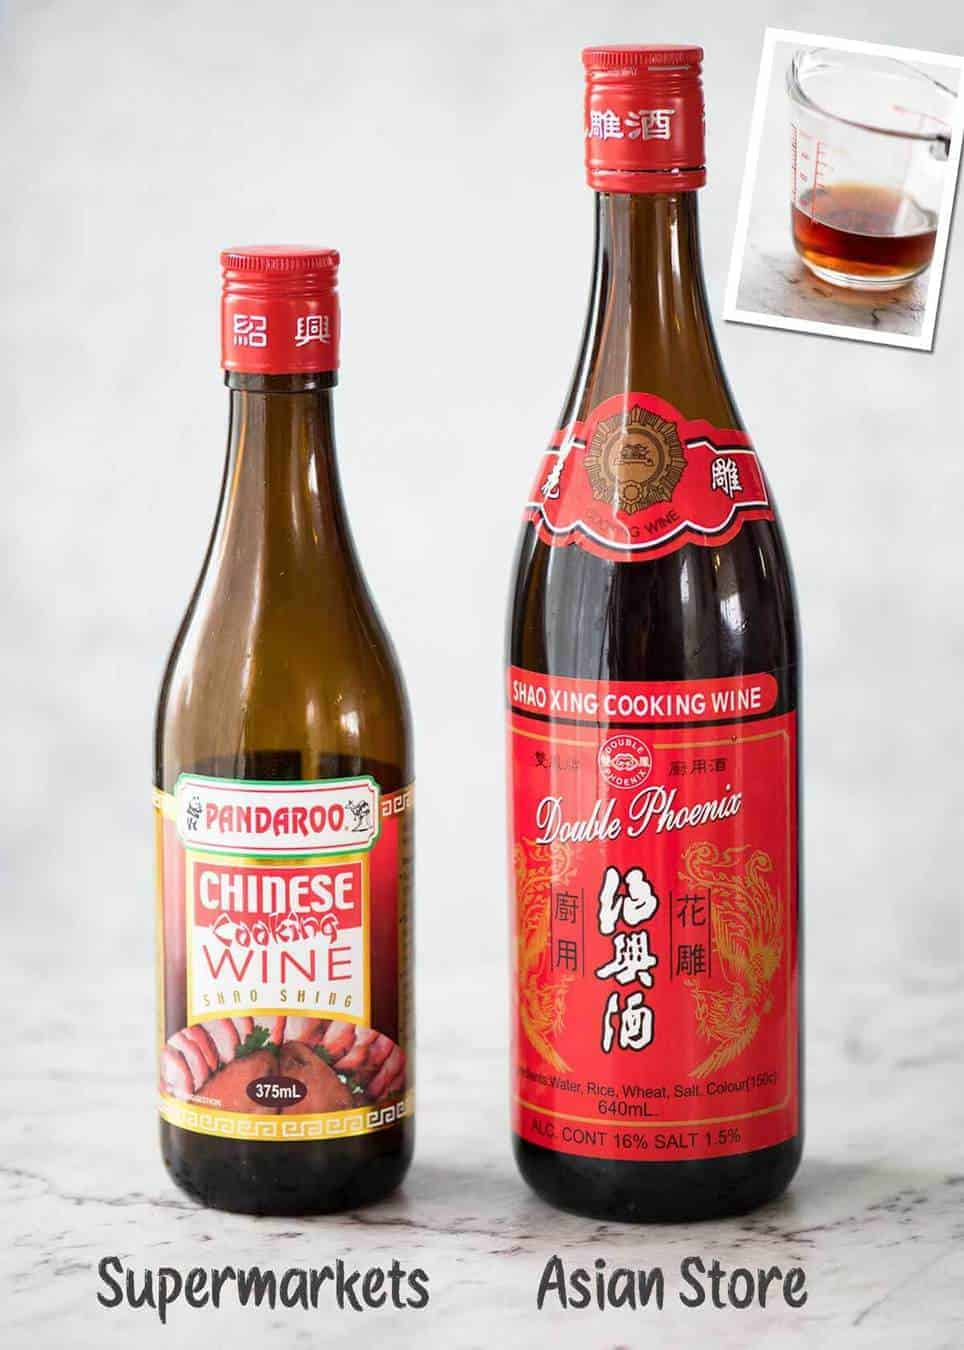 Chinese Cooking Wine (Shaoxing rice wine, Shao-hsing or Shaohsing) - an essential to make truly tasty stir fries like Chinese restaurants. recipetineats.com